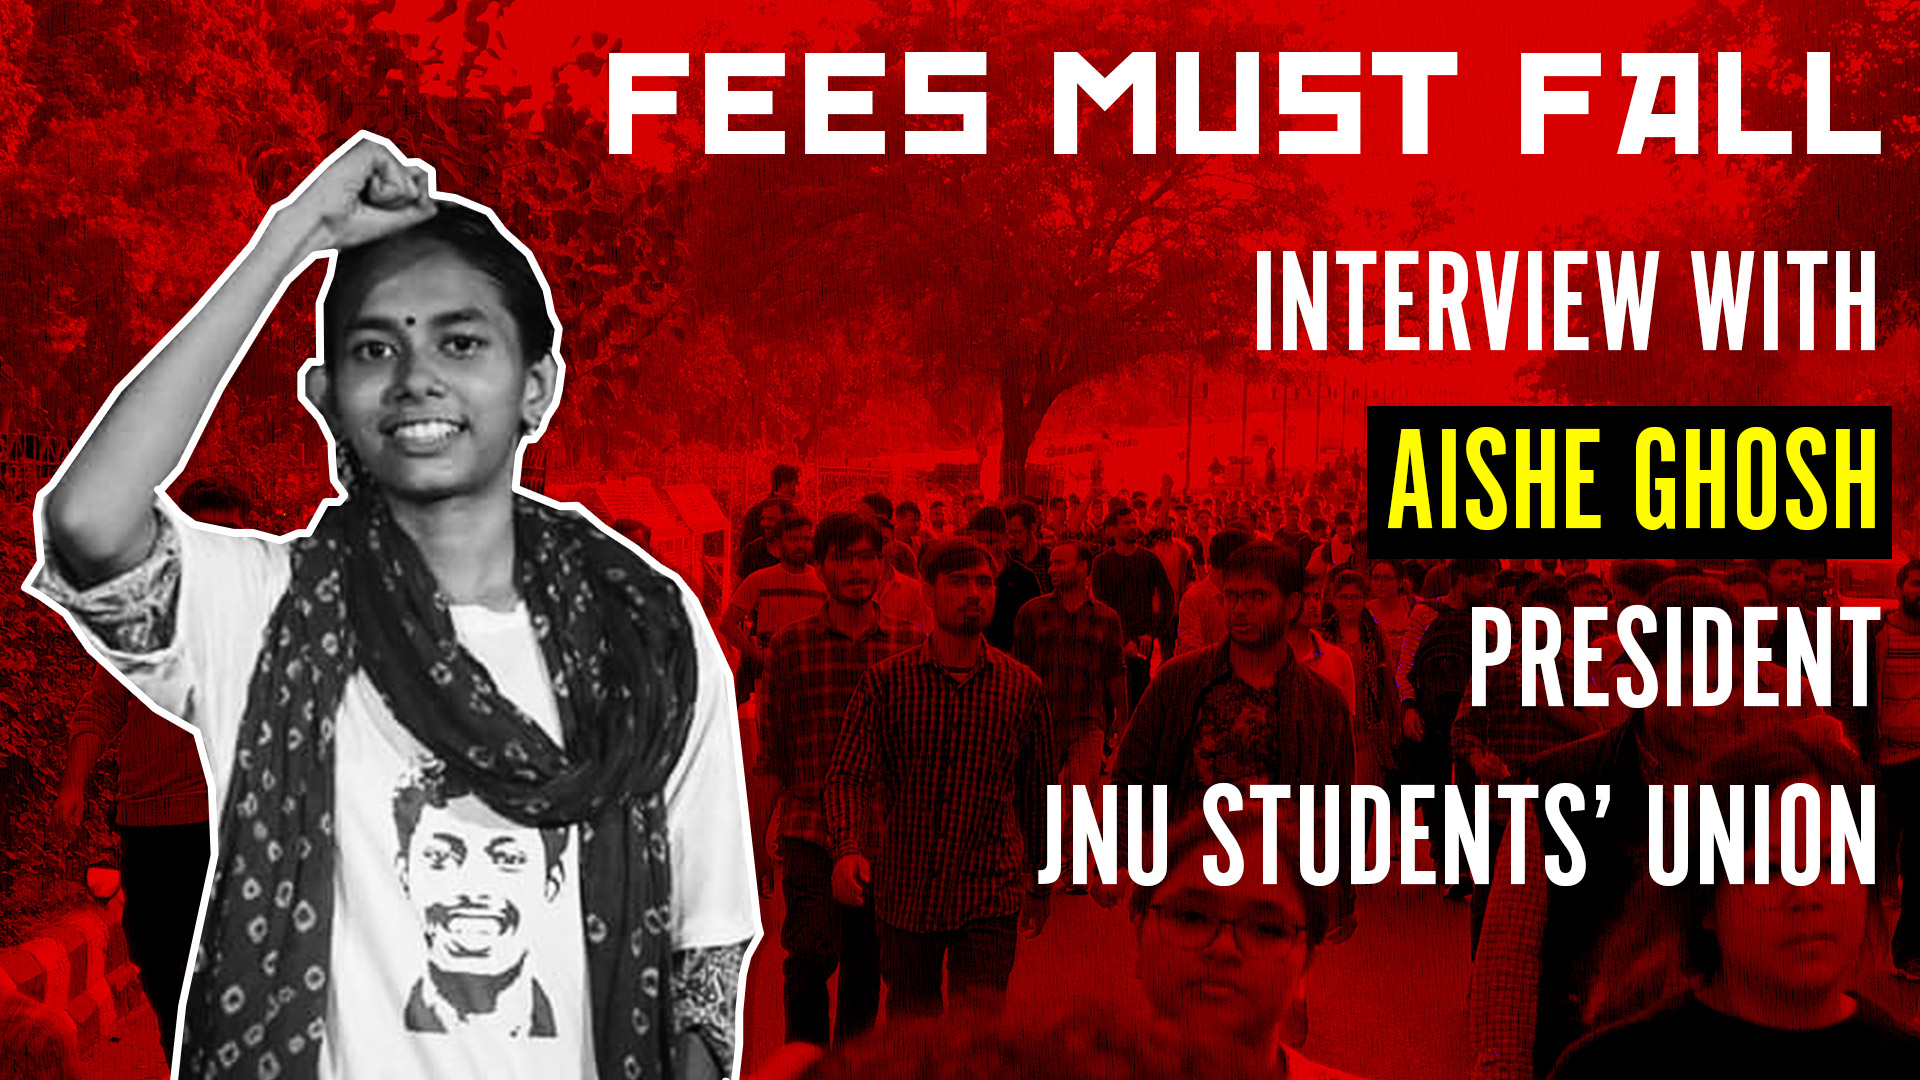 AISHE GHOSH JNU STUDENTS' UNION PRESIDENT_INTERVIEW